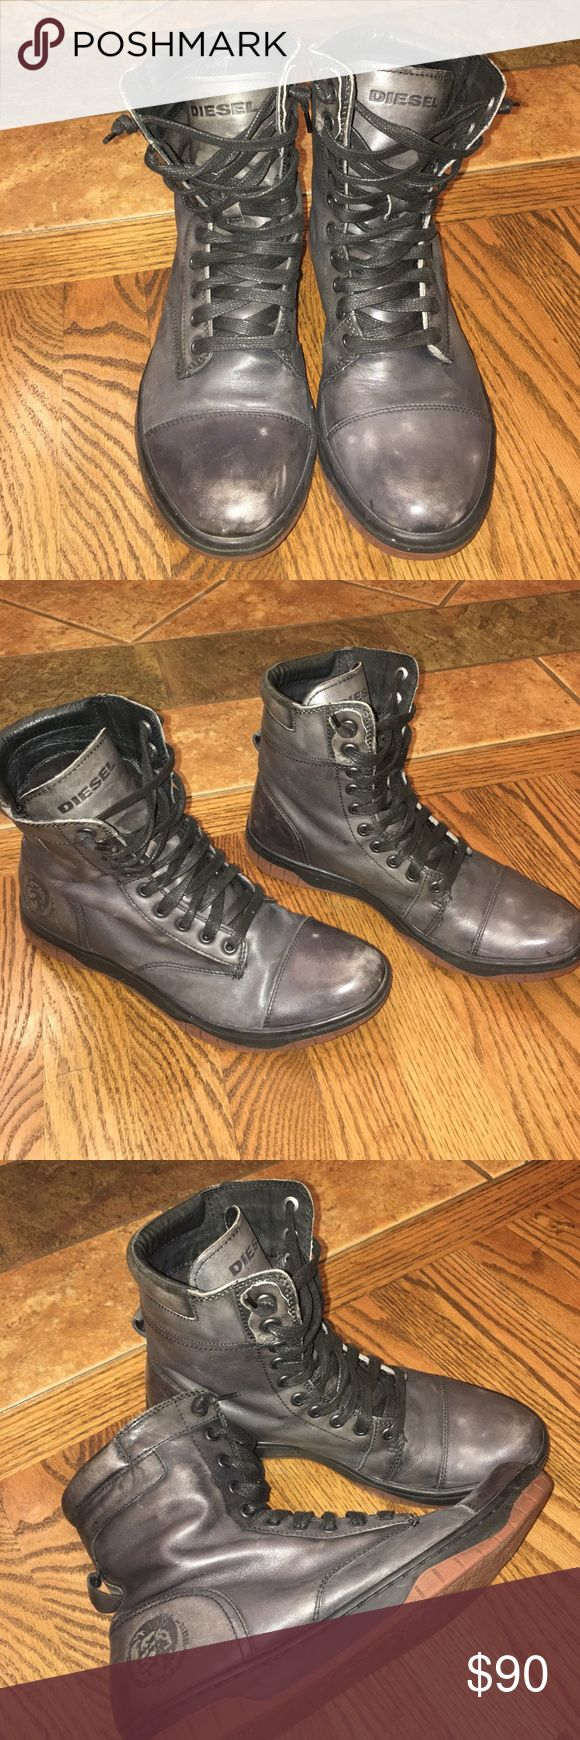 MENS Diesel boots! Selling like new men's Diesel boots! Size 9.5 these boots where worn once! There a darker gray color. Comes from smoke free and pet free home! Diesel Shoes Boots